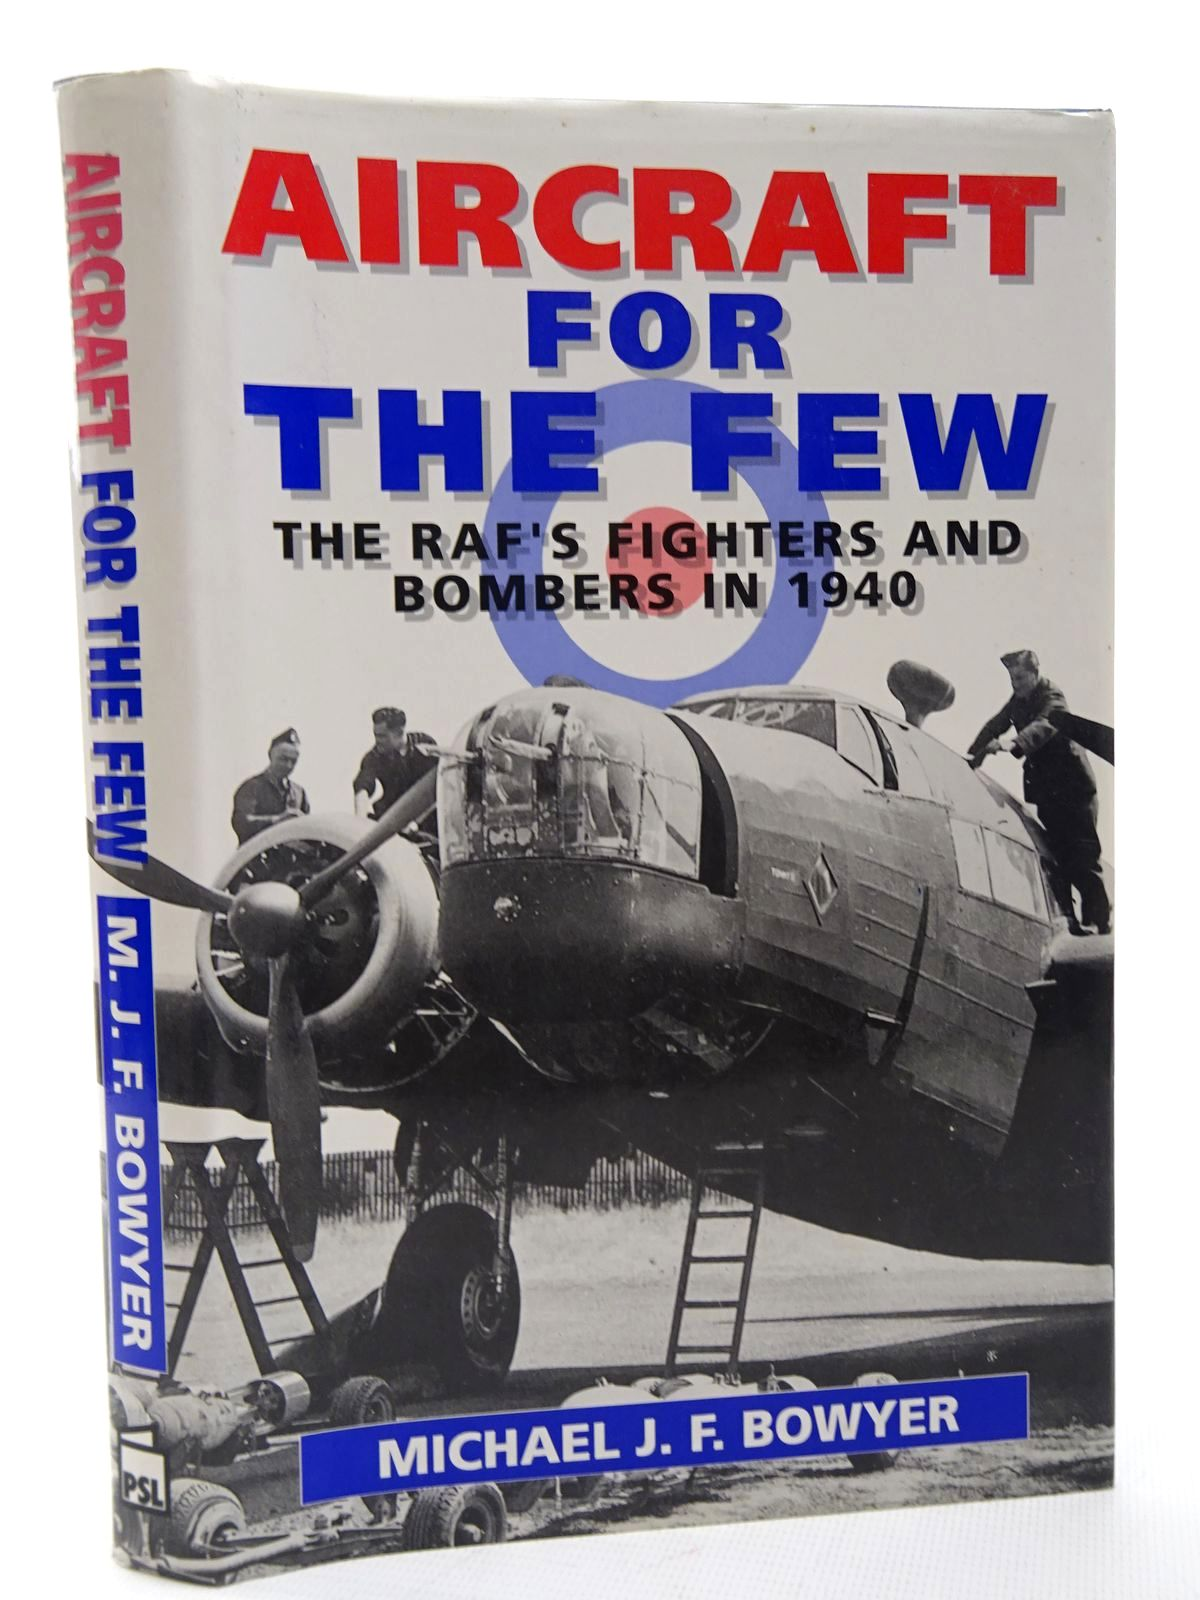 Photo of AIRCRAFT FOR THE FEW THE RAF'S FIGHTER AND BOMBERS OF 1940 written by Bowyer, Michael J.F. published by Patrick Stephens Limited (STOCK CODE: 1610246)  for sale by Stella & Rose's Books